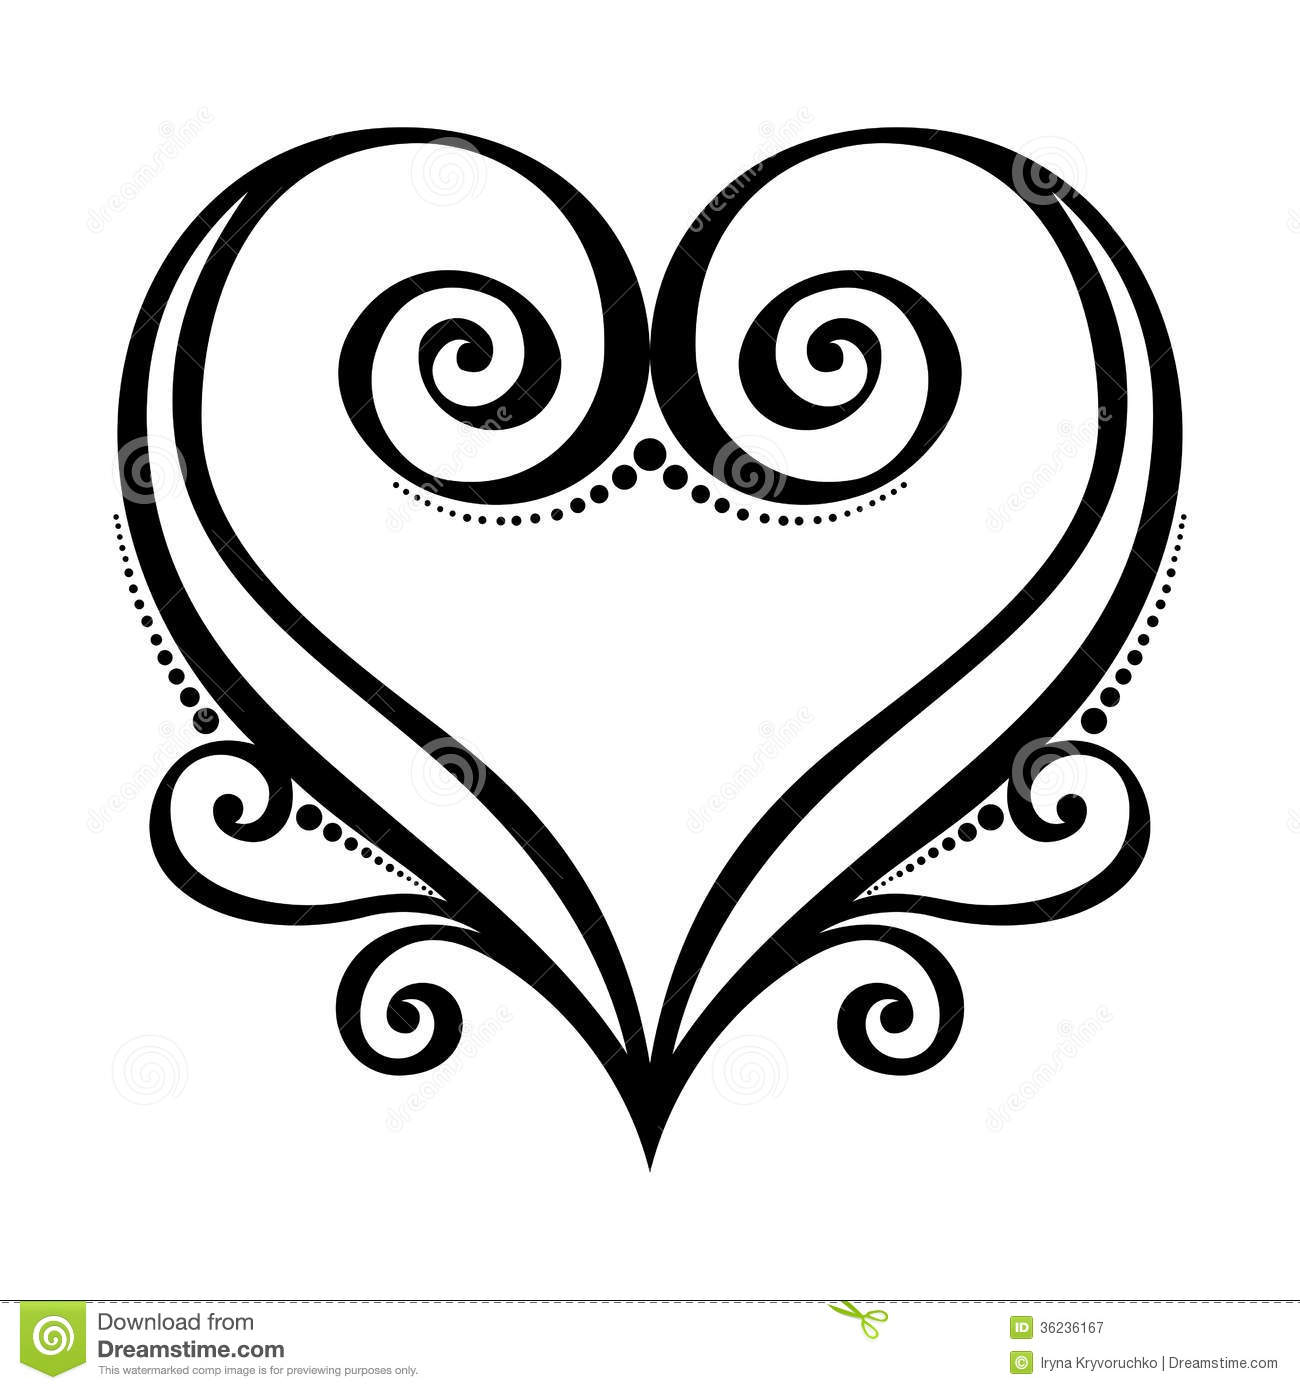 Deco Heart Royalty Free Stock Photography Image 36236167